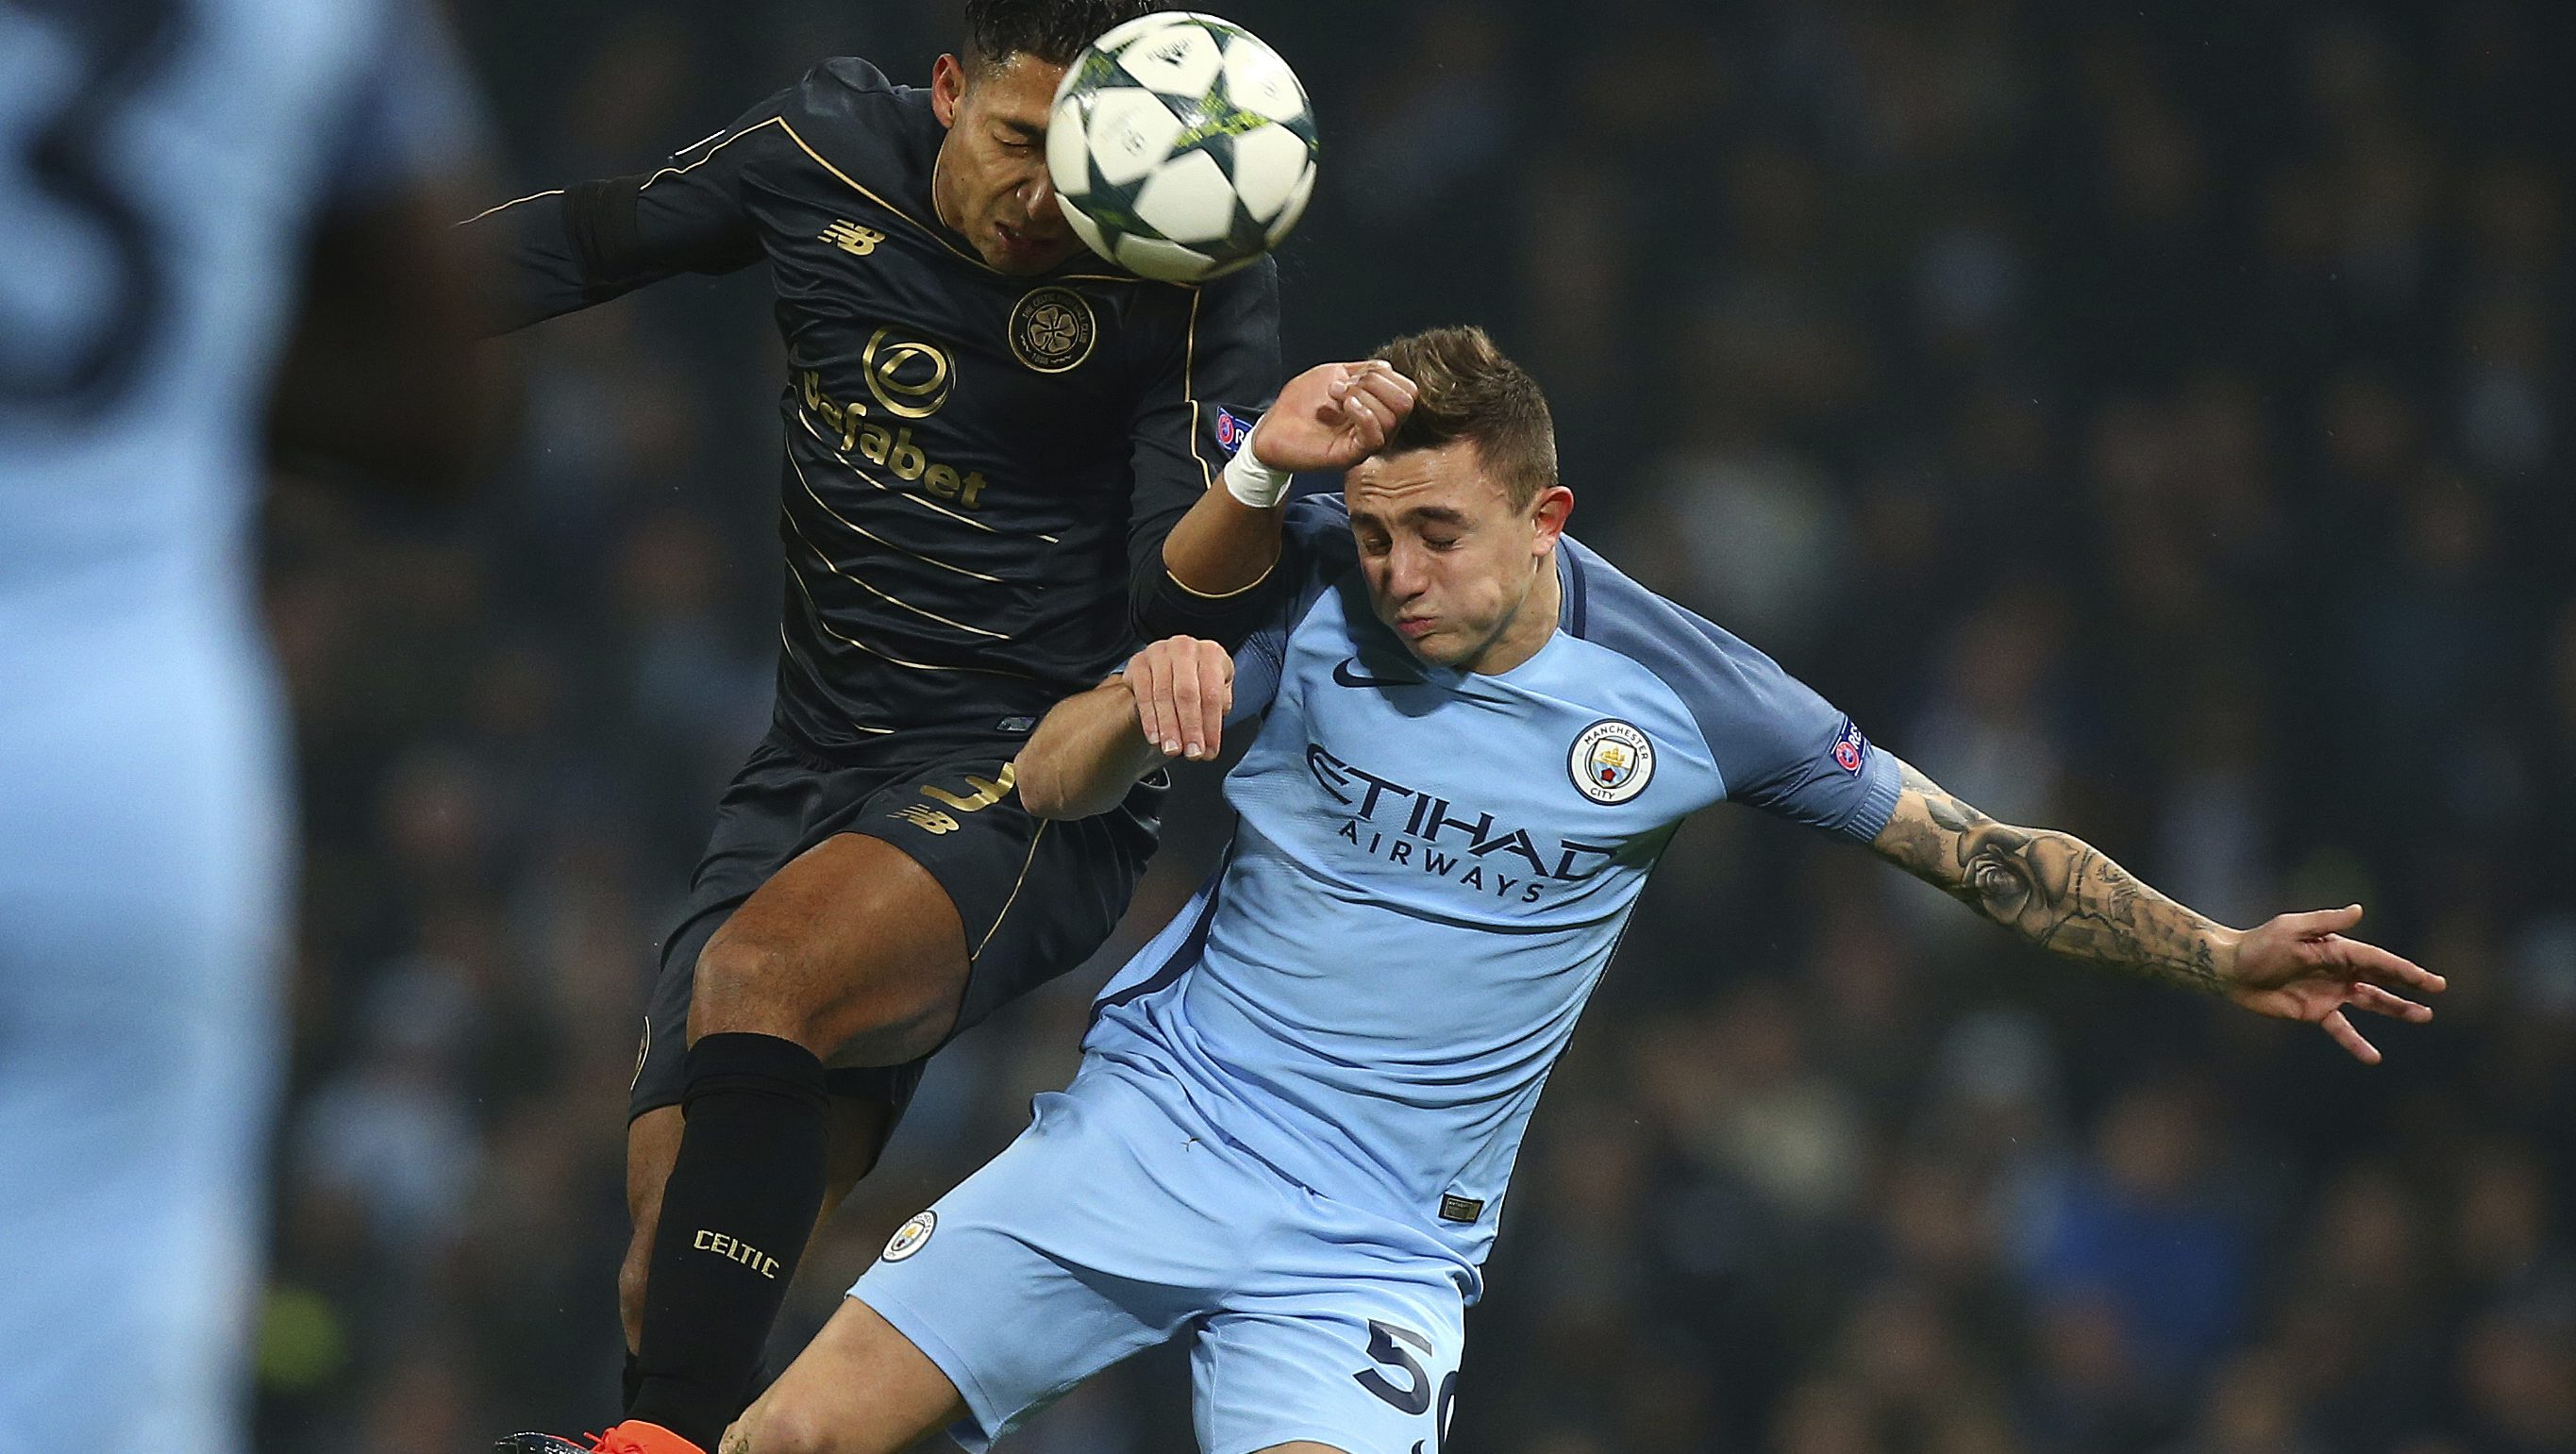 Celtic's Emilio Izaguirre, left, and City's Pablo Maffeo challenge for the ball during the Champions League group C soccer match between Manchester City and Celtic at the Etihad stadium in Manchester, England, Tuesday, Dec. 6, 2016.(AP Photo/Dave Thompson))